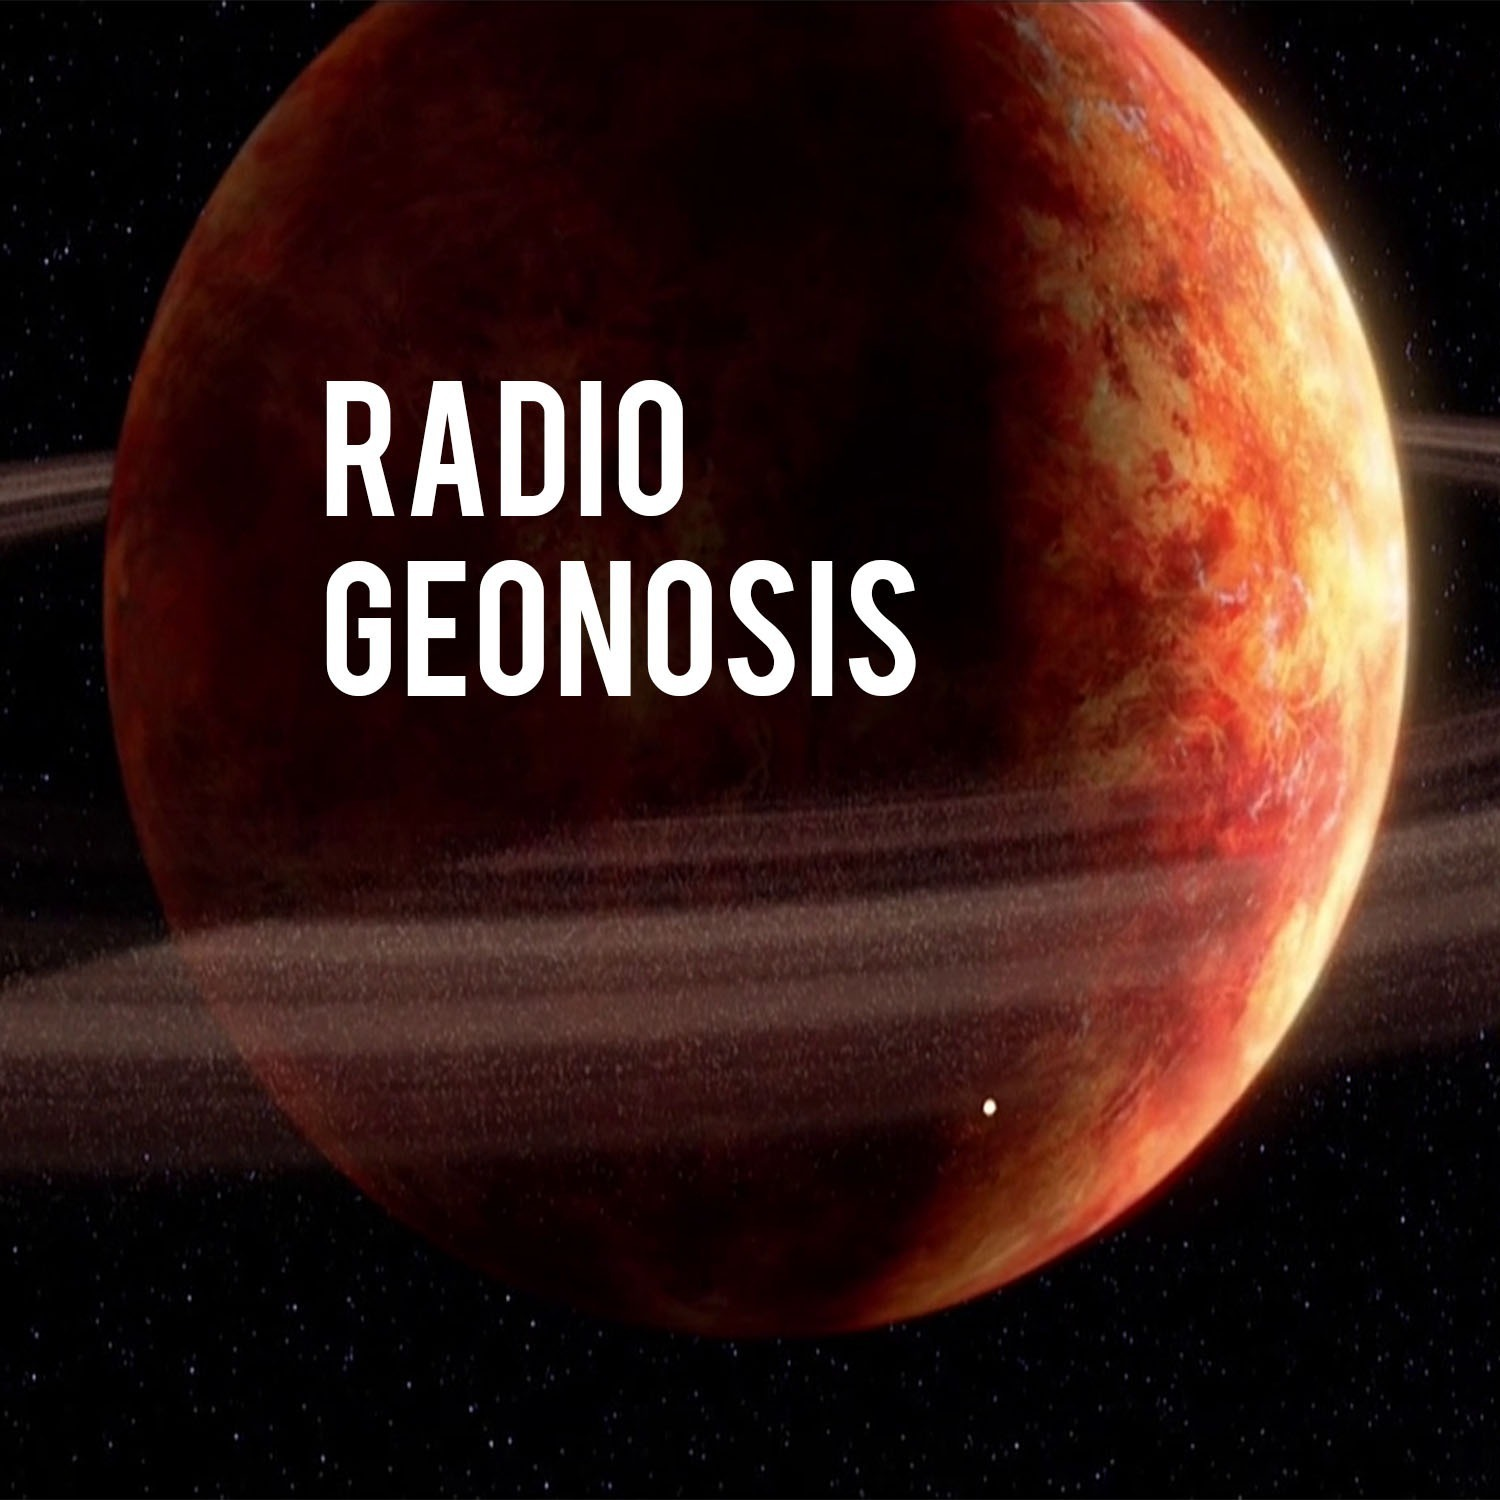 063 - Radio Geonosis Ep. 63 - Saber Combat Fighting Styles